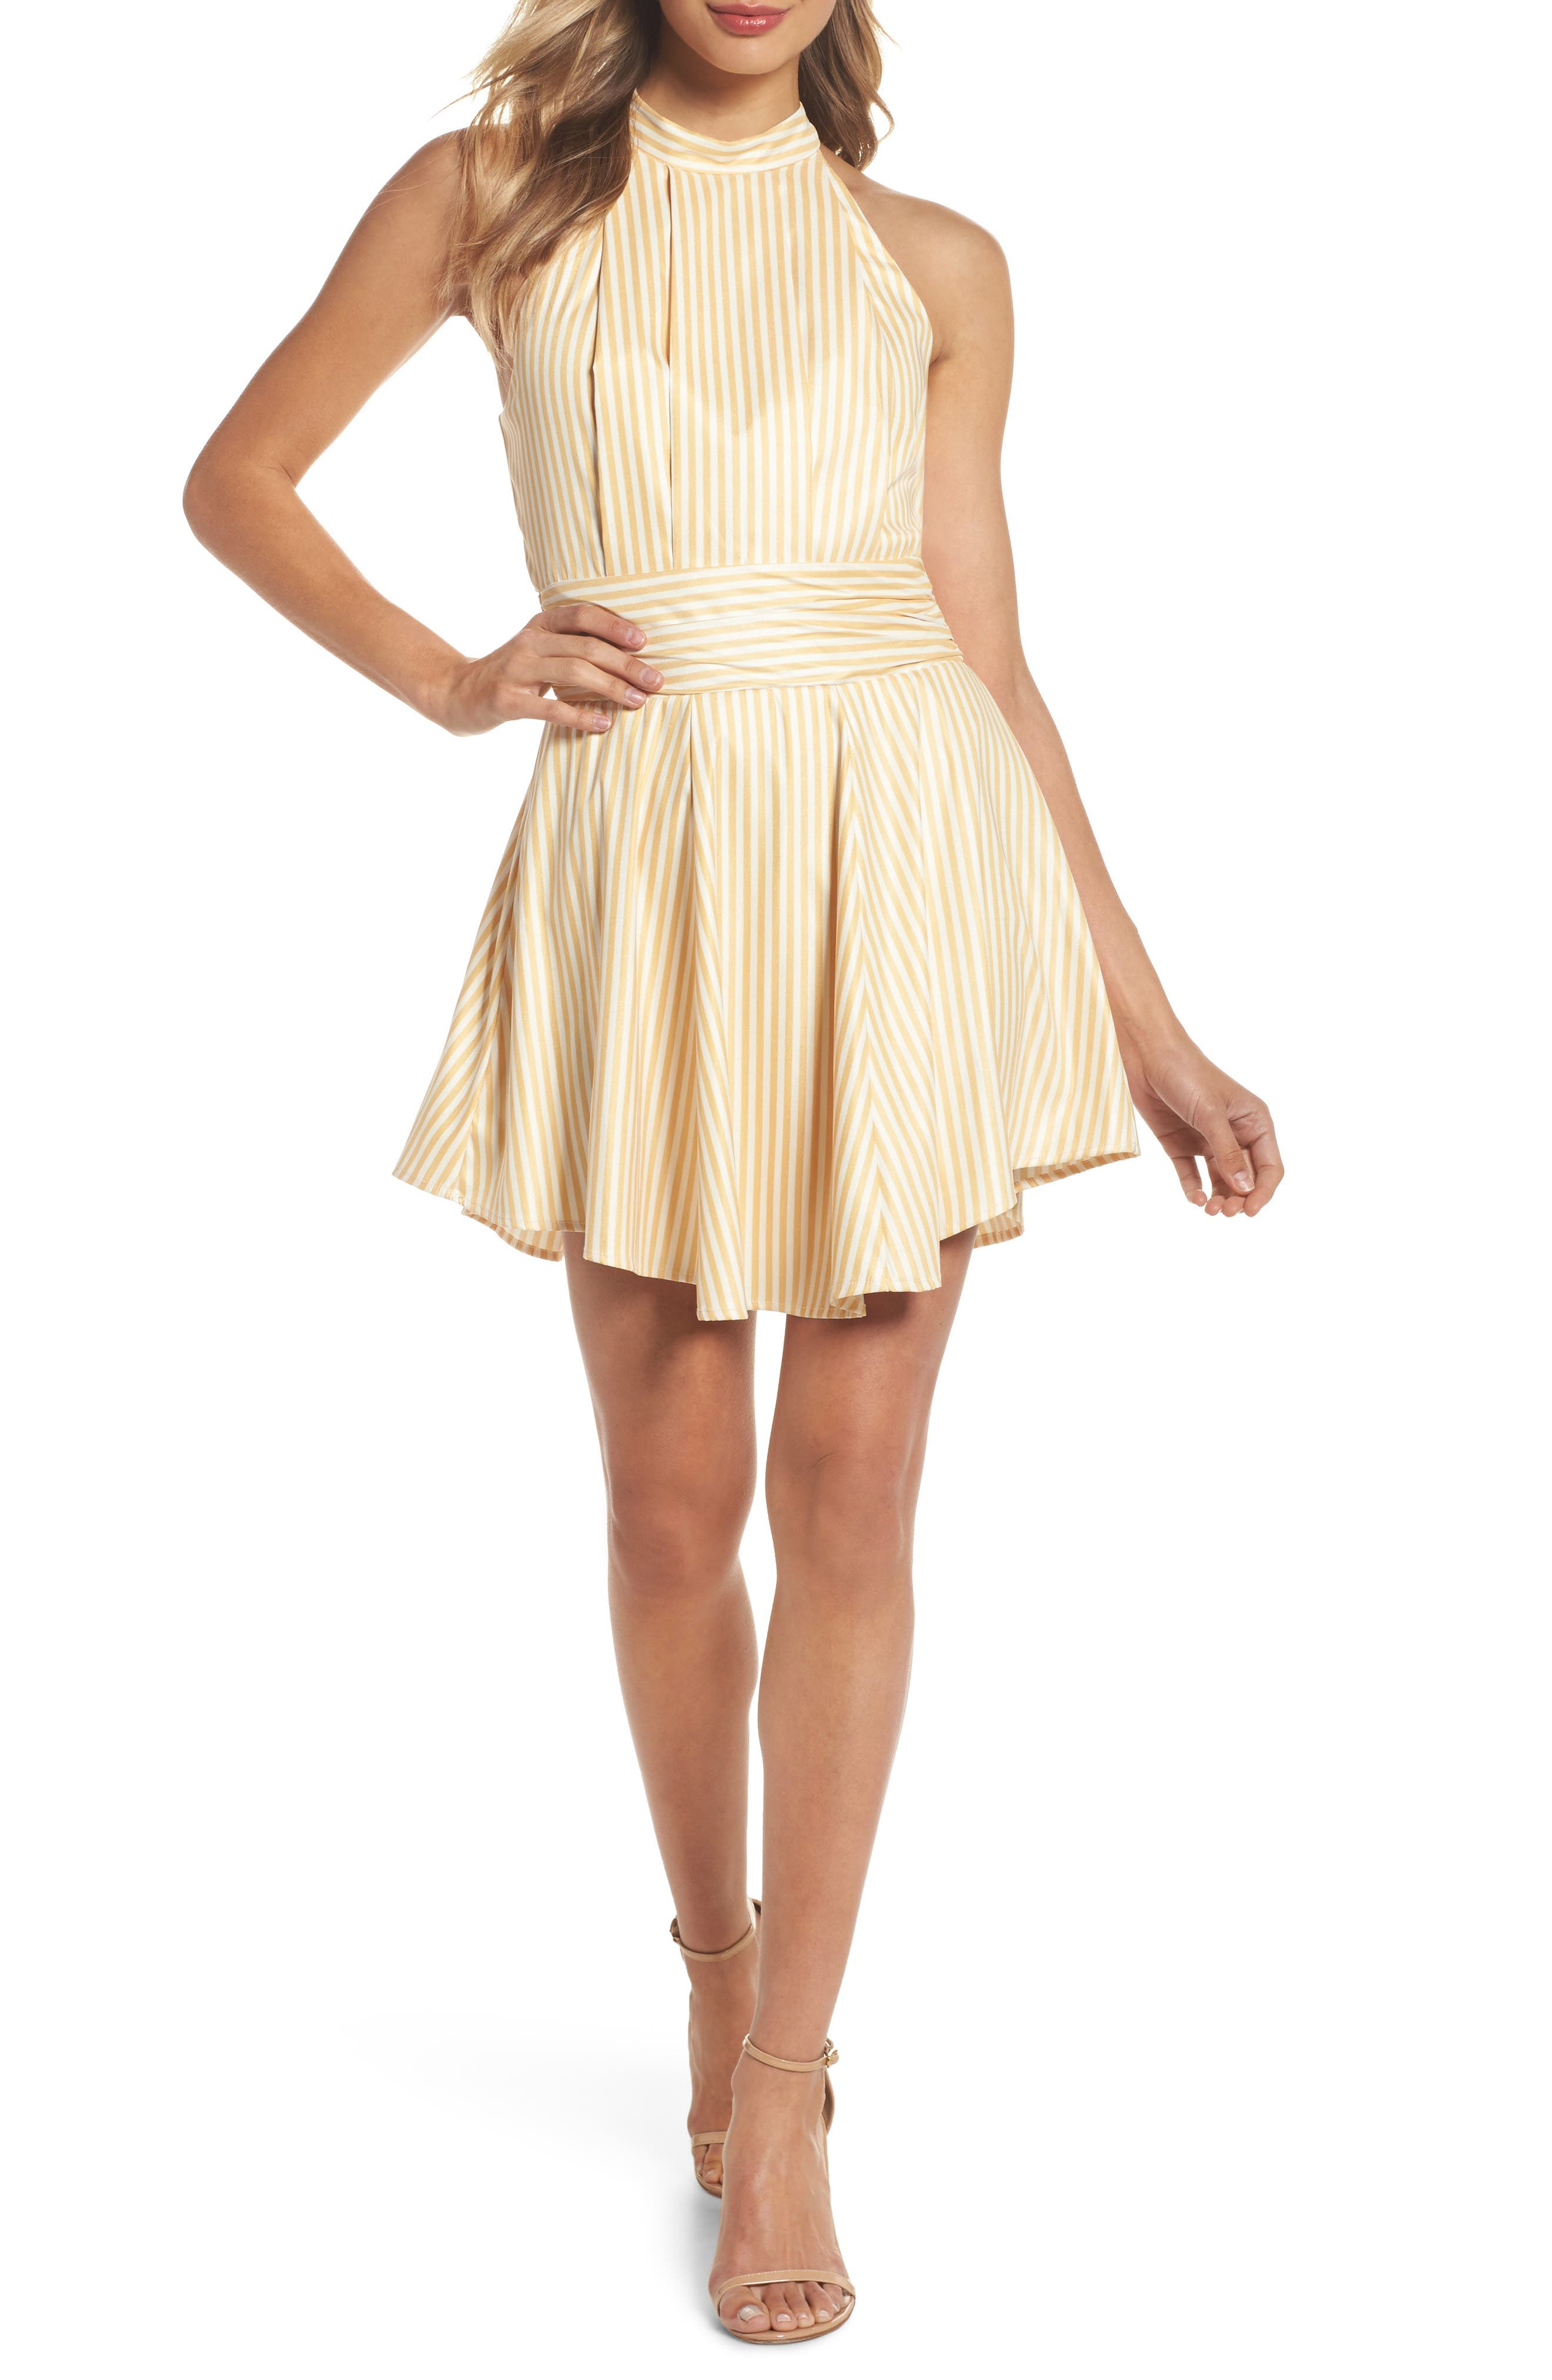 Believe in Me Halter Neck Party Dress,                             Main thumbnail 1, color,                             740